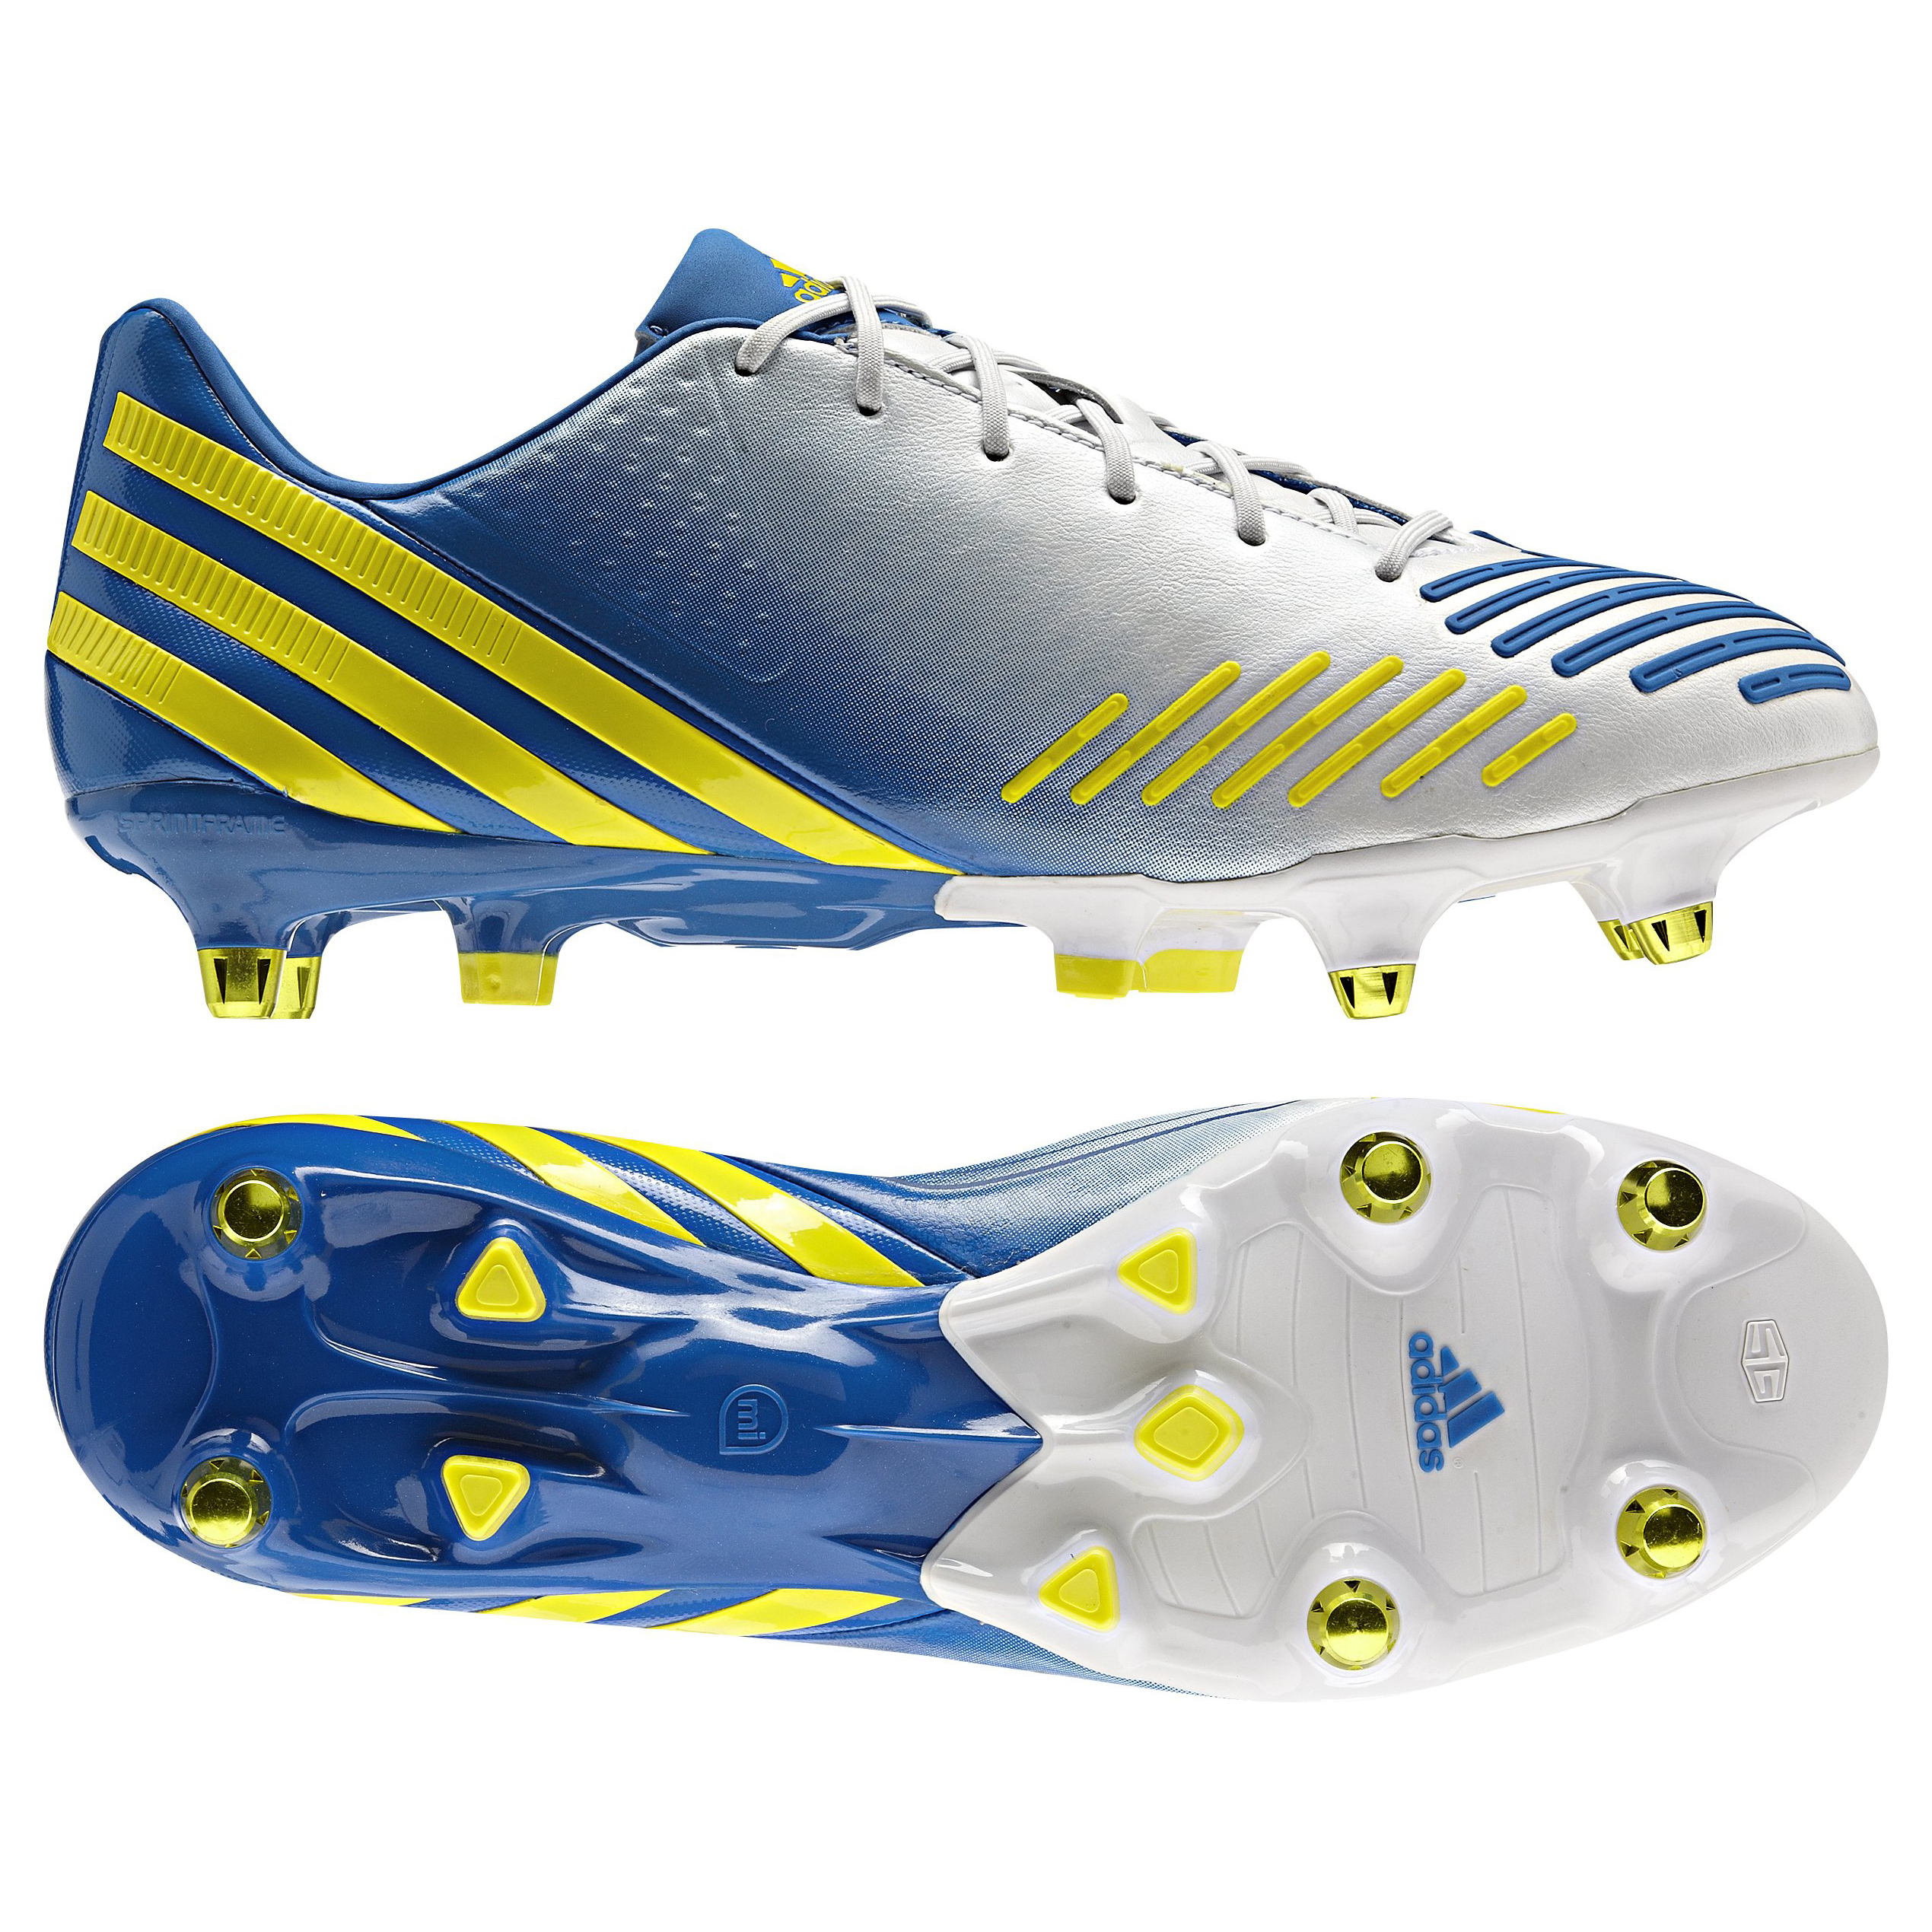 adidas Predator LZ XTRX Soft Ground Football Boots - Running White/Vivid Yellow/Prime Blue